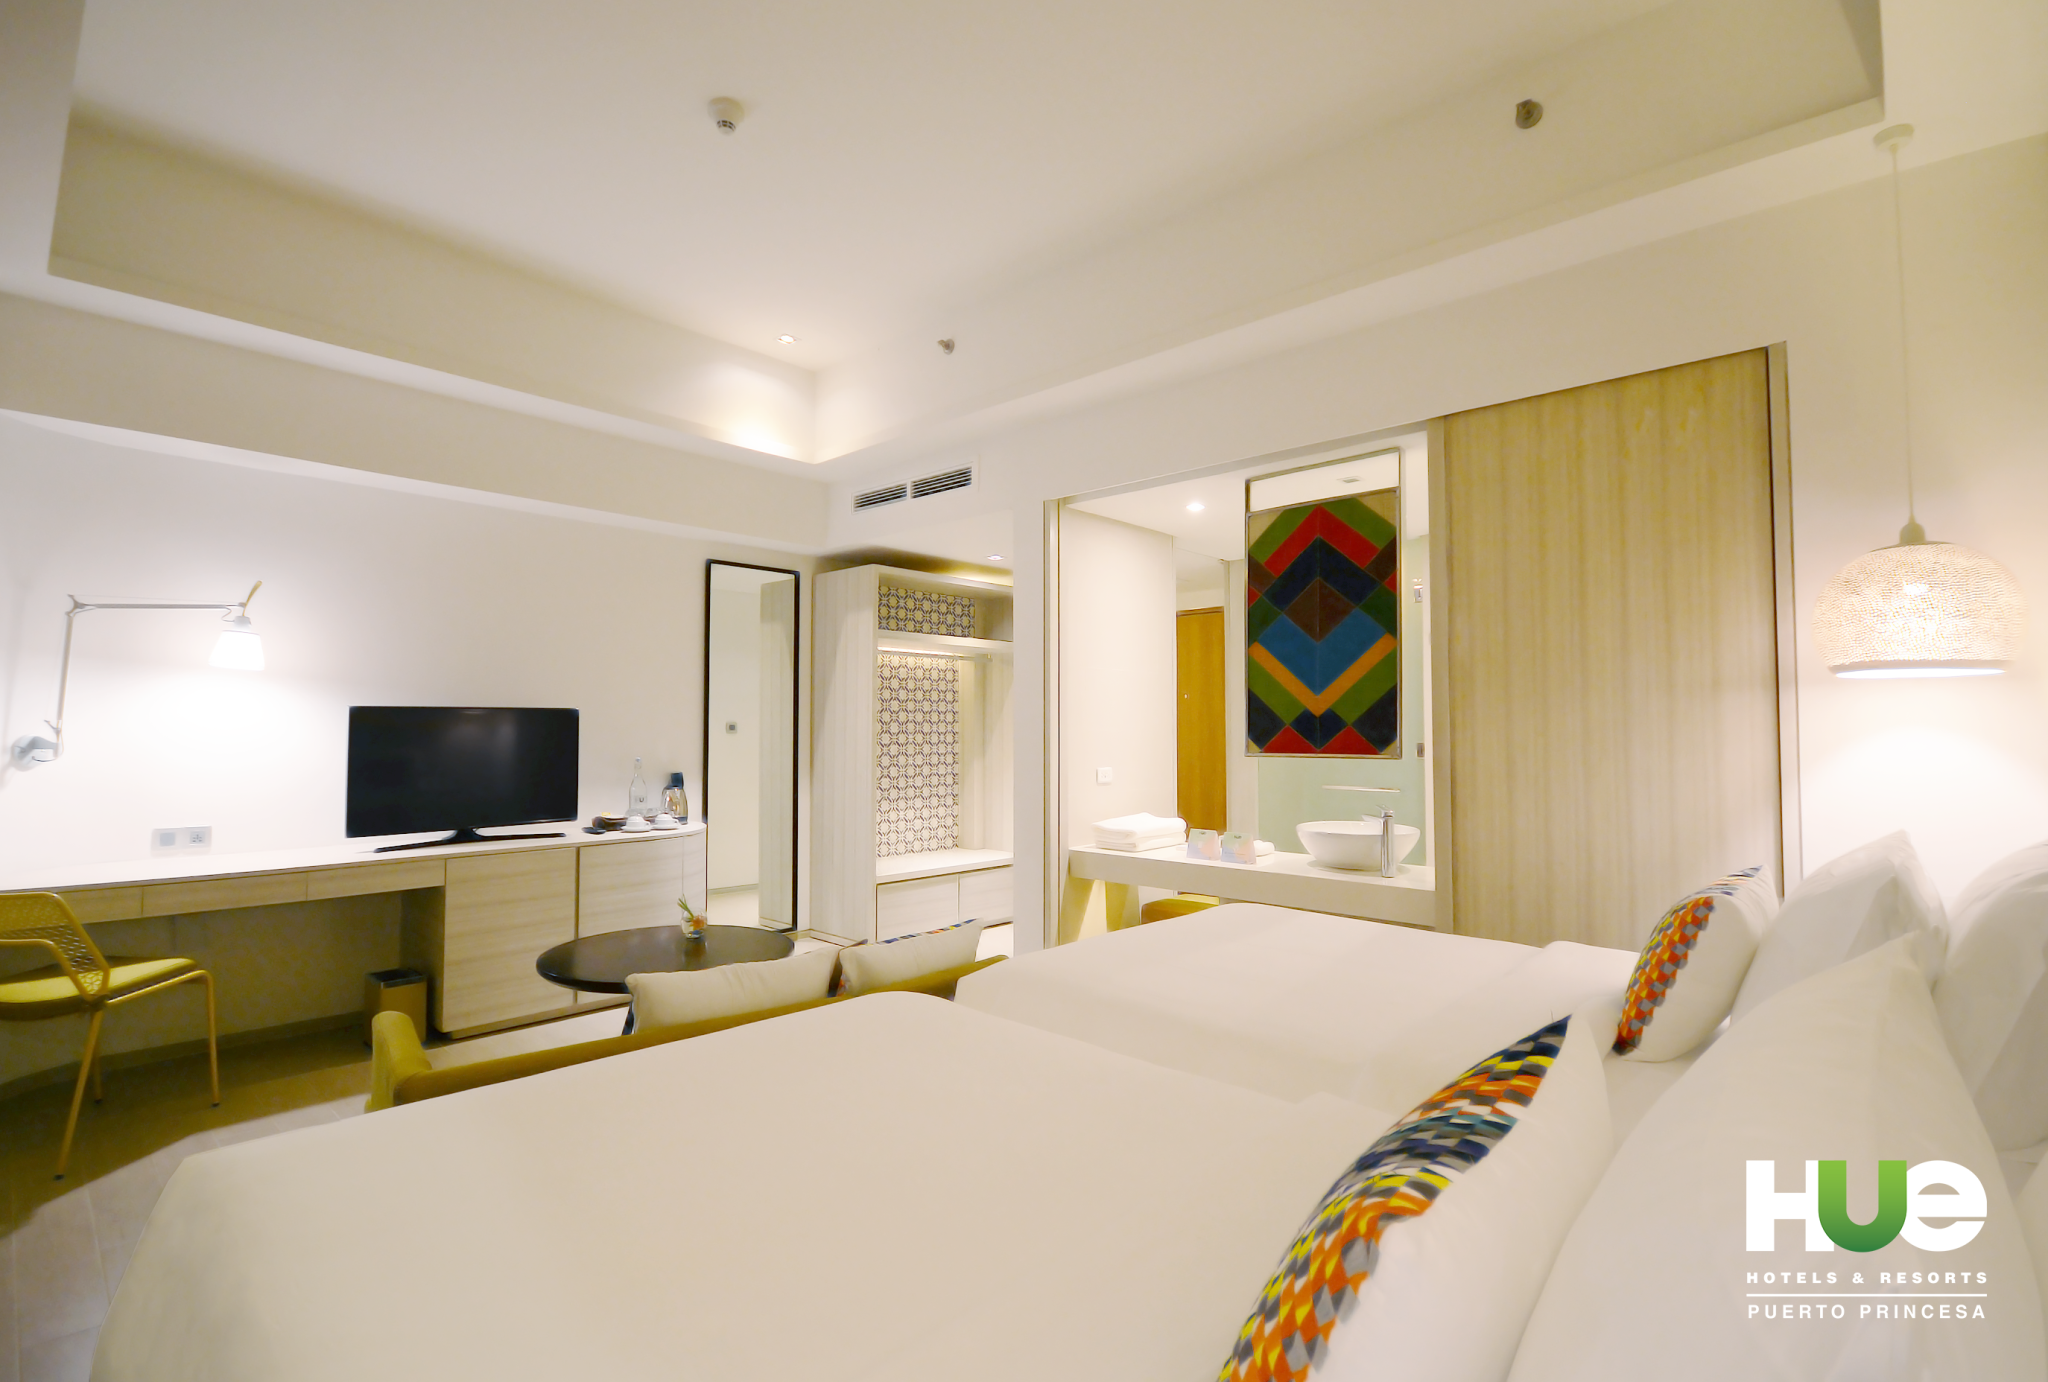 Hue Hotels and Resorts Puerto Princesa Managed by HII 2